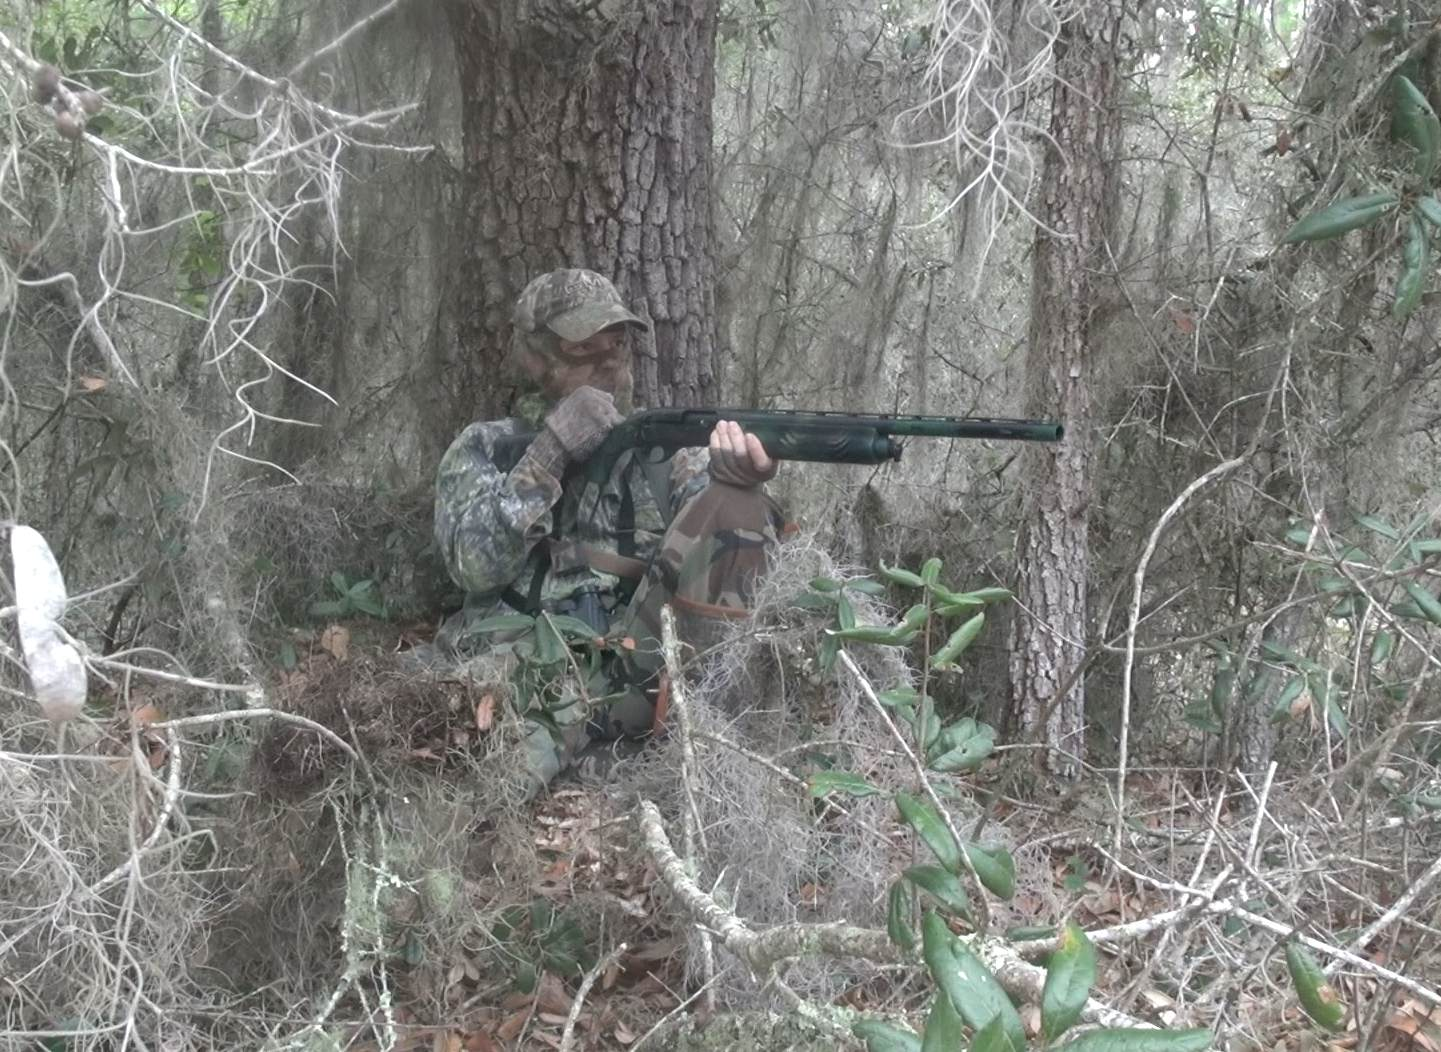 Turkey Hunting Gear Bull Creek Outfitters